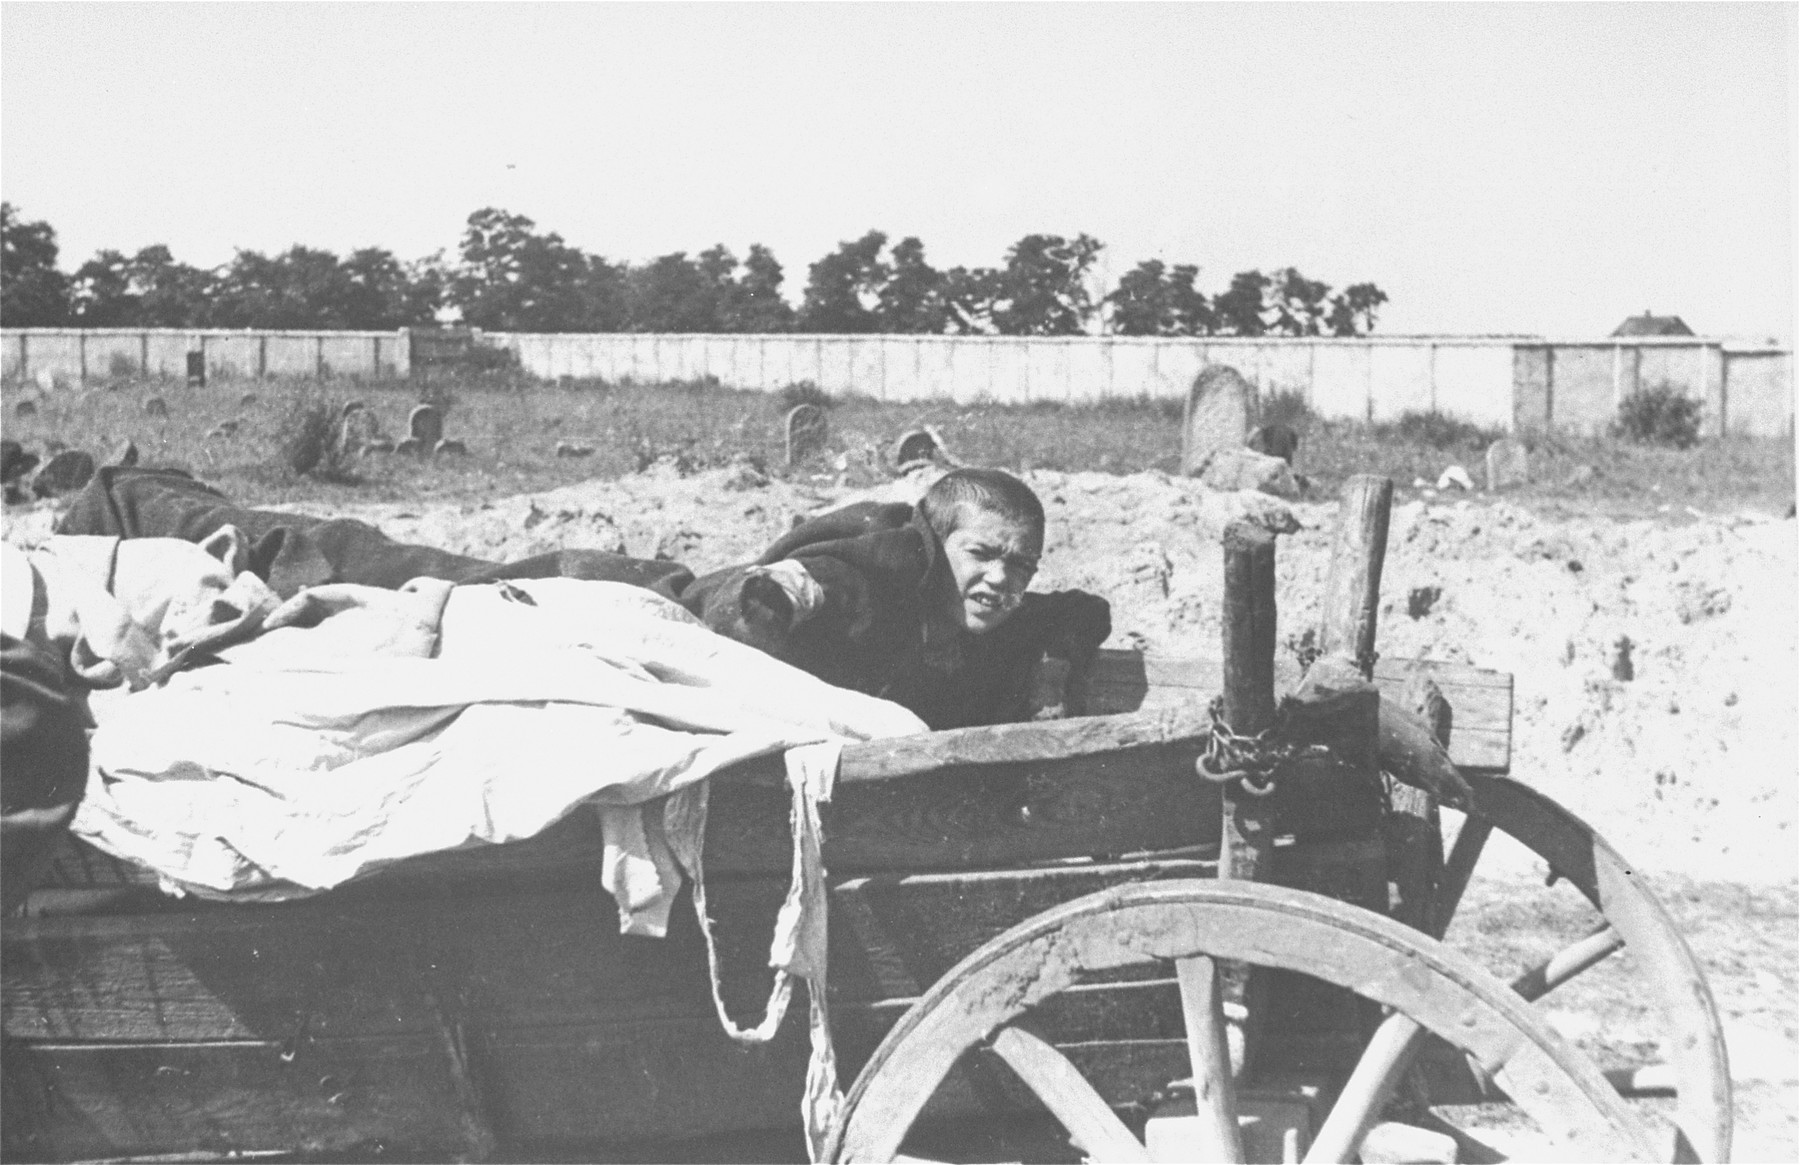 A Jewish boy wearing an armband wakes up in a cart full of corpses that is being transferred from the Siedlce ghetto hospital to the Jewish cemetery for burial.    The boy was subsequently shot and buried with the corpses.  This incident was witnessed and photographed by Tadeusz Castelli.